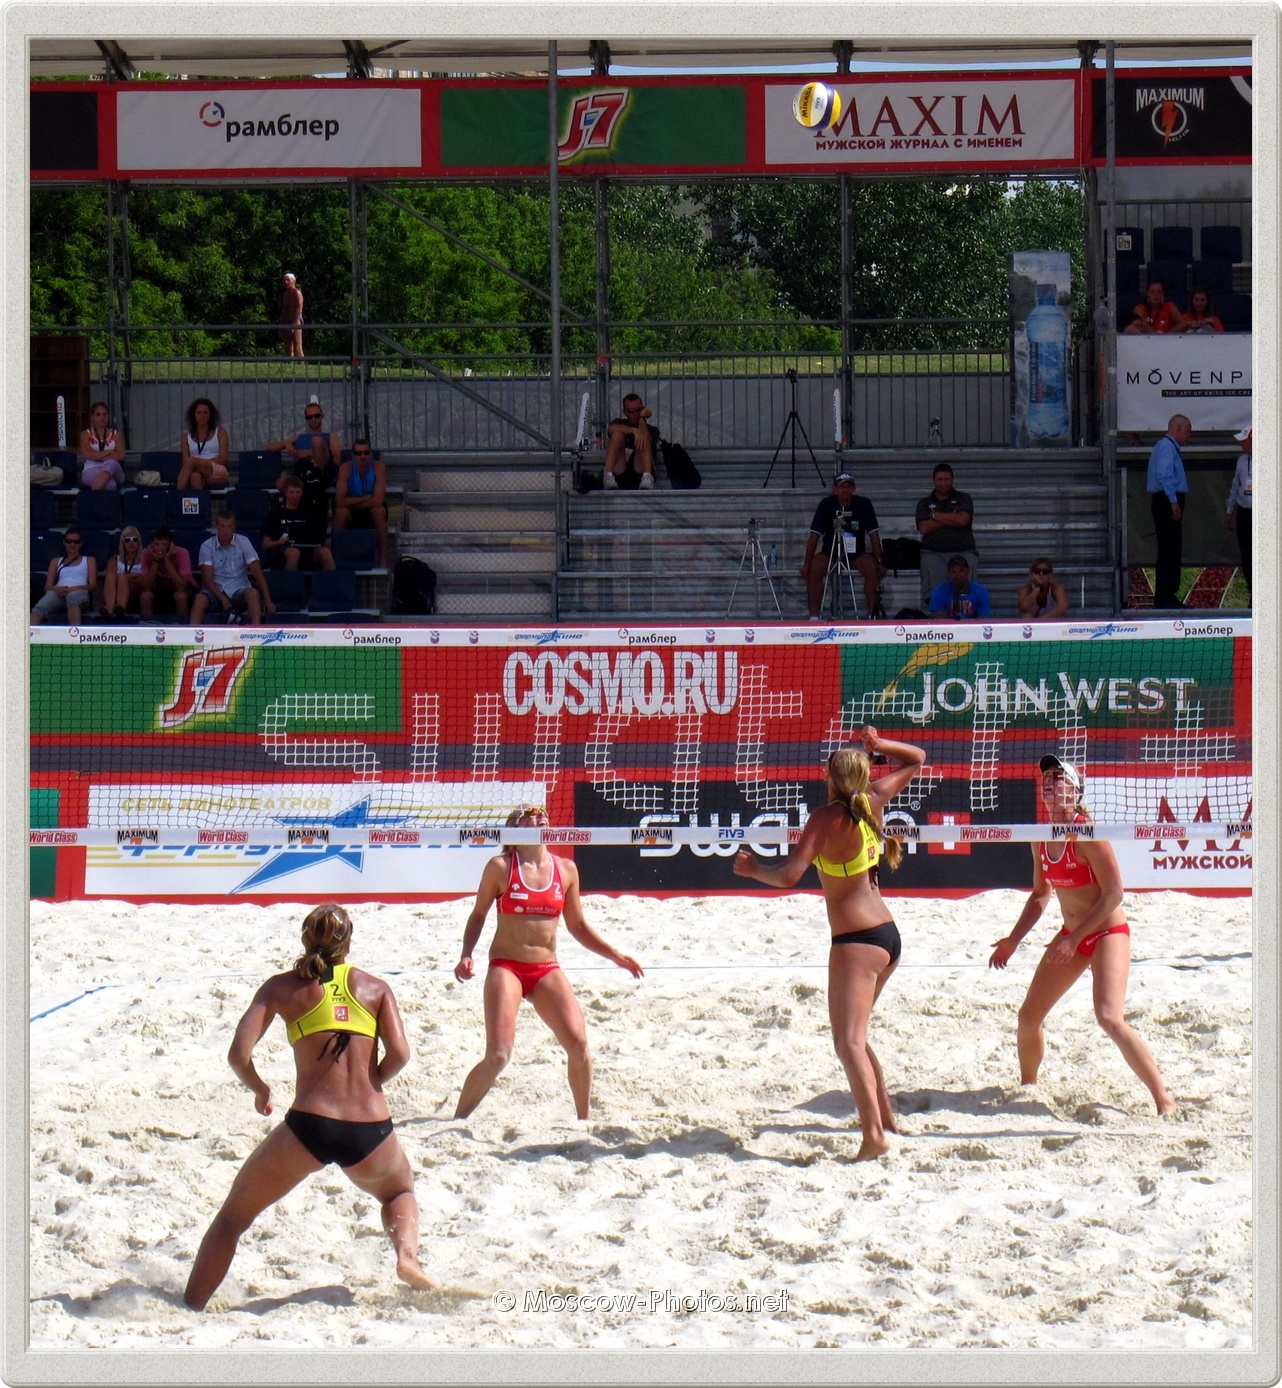 Beach Volleyball 2011 - Ball on Court